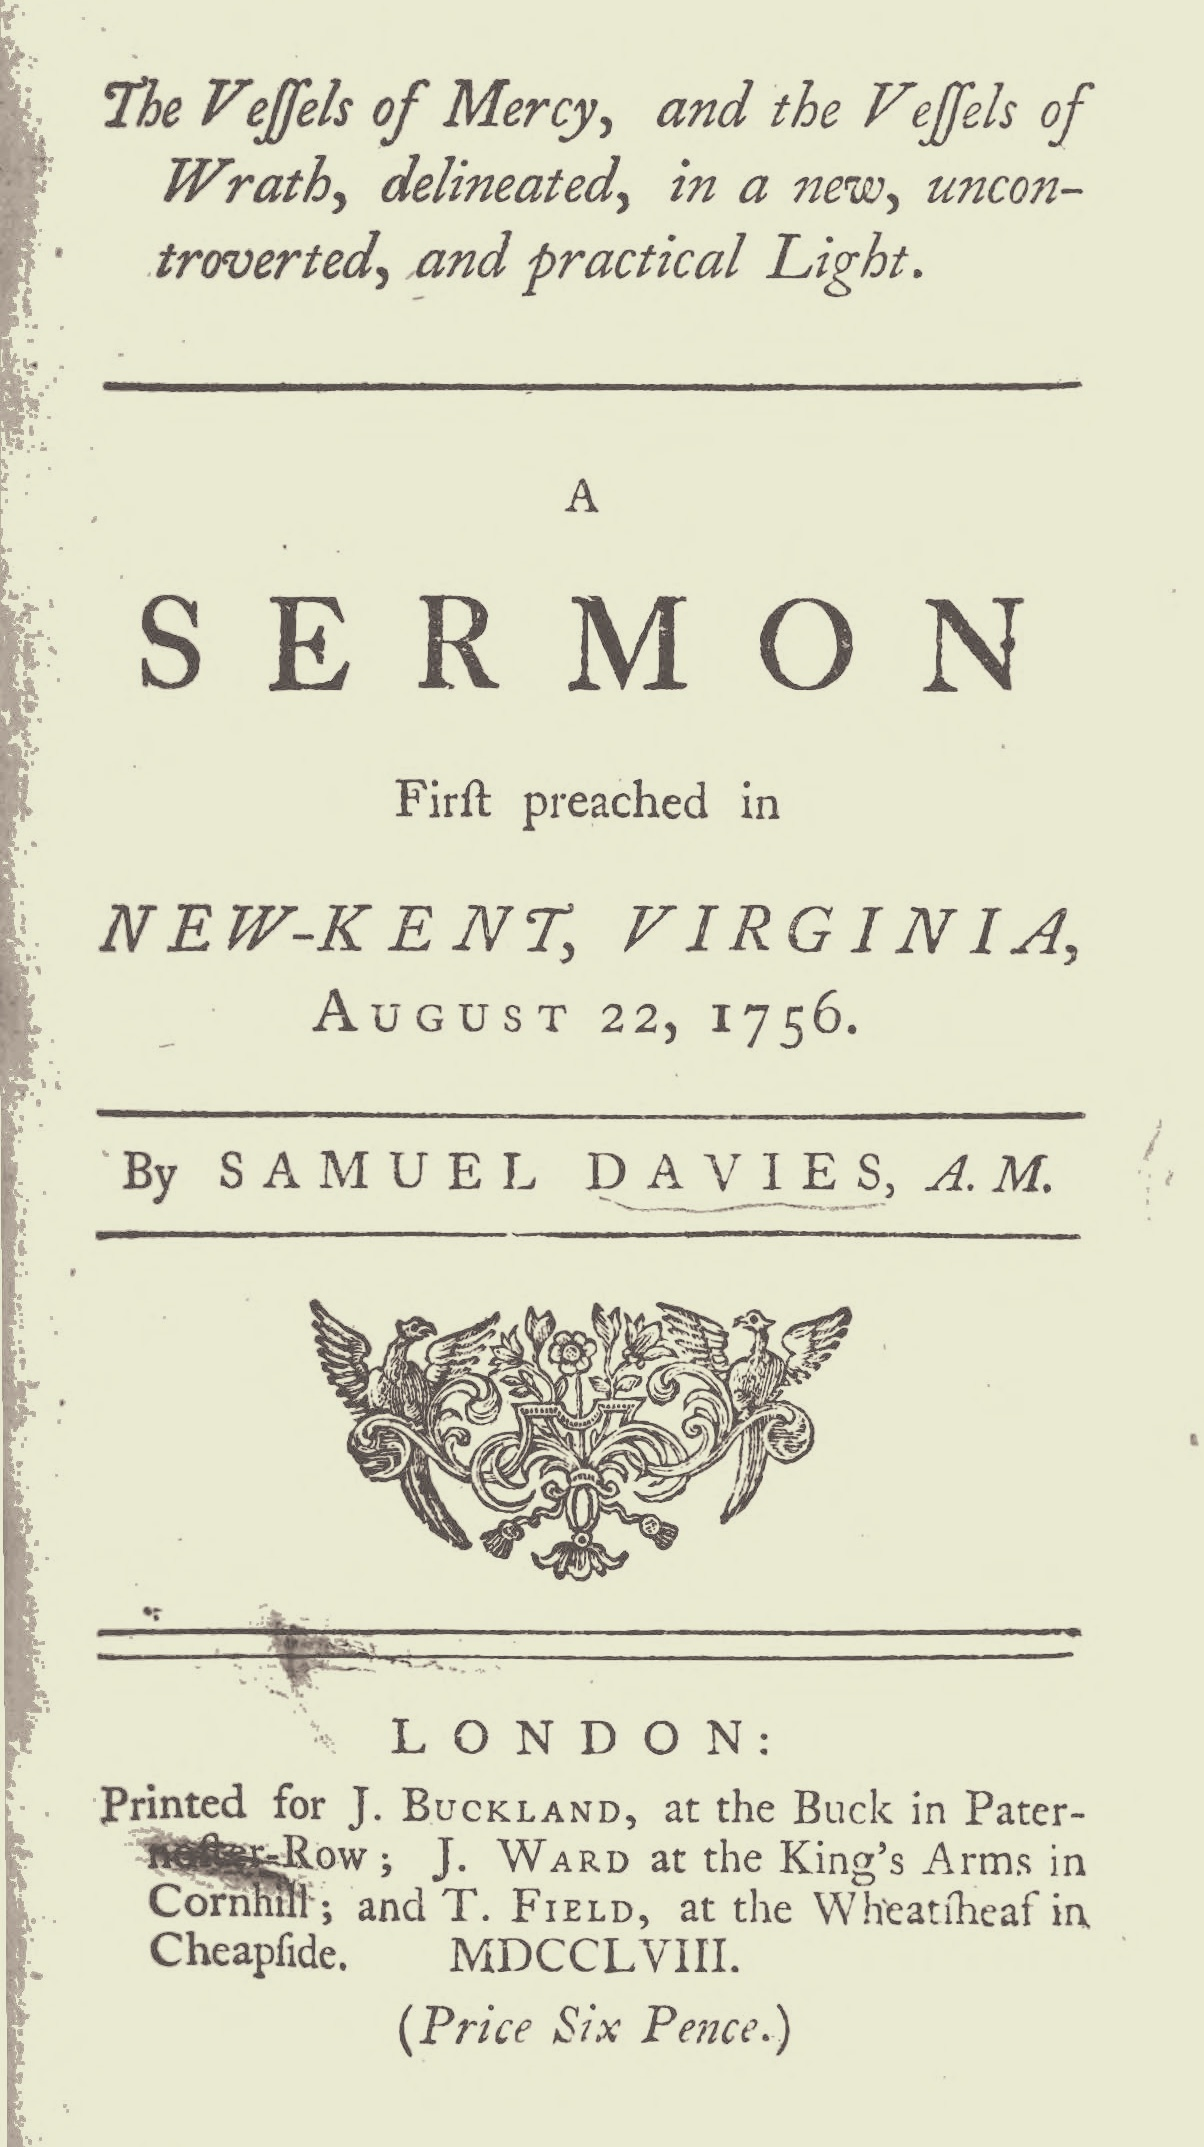 Davies, Samuel, The Vessels of Mercy, and the Vessels of Wrath Title Page.jpg